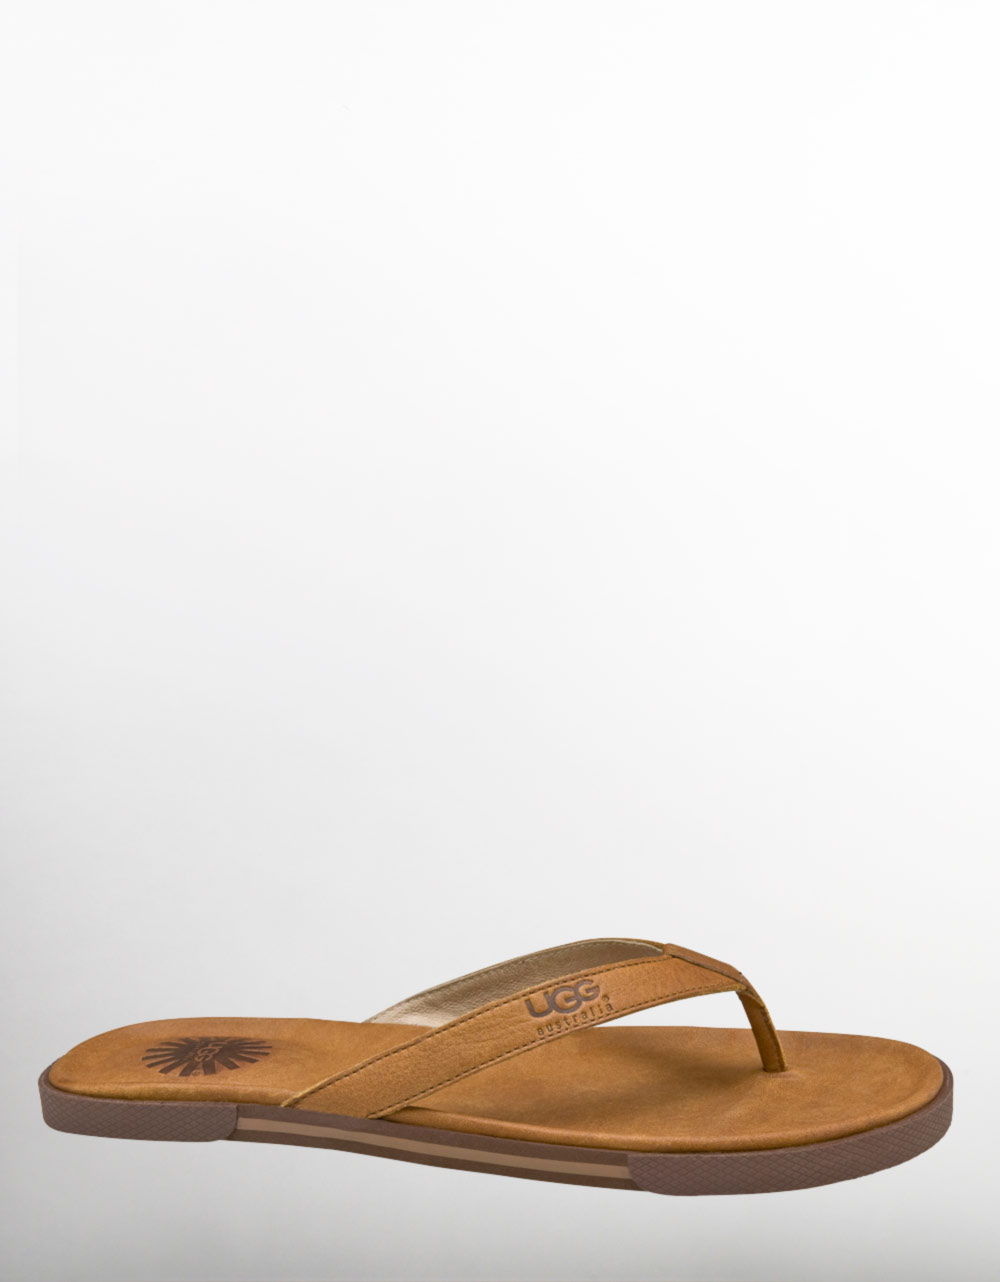 7603dff7848a Lyst - Ugg Bennison Leather Thong Sandals in Brown for Men